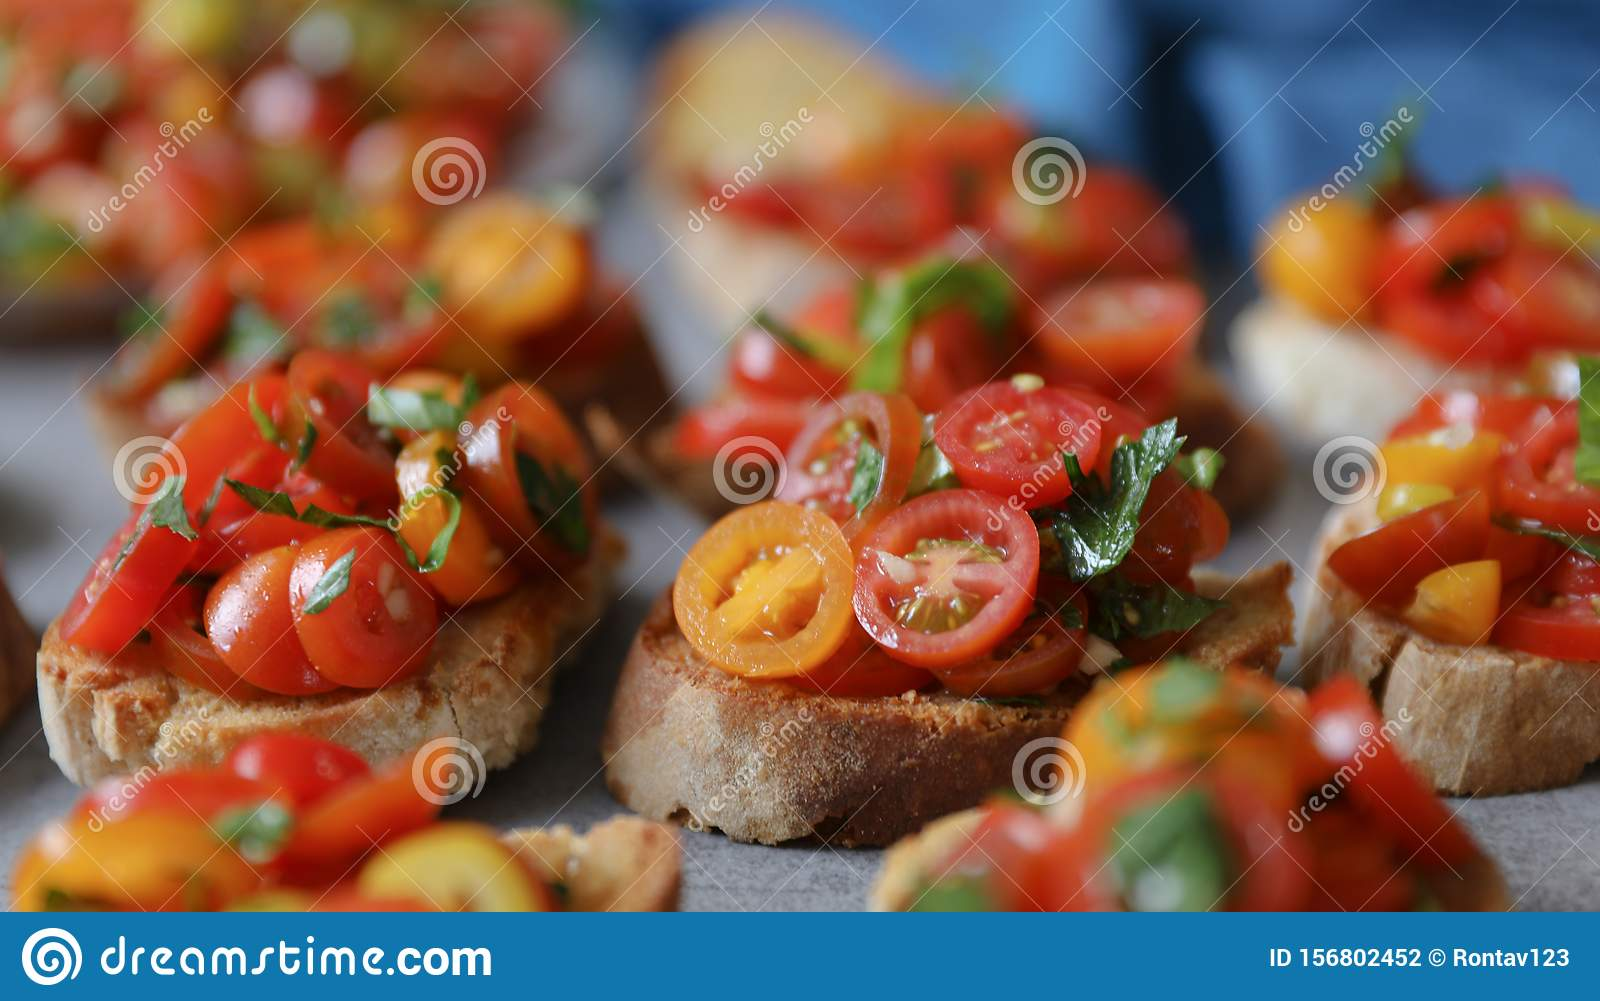 Bruschetta with tomatoes, basil and parsley, an Italian delicious savory appetizer.